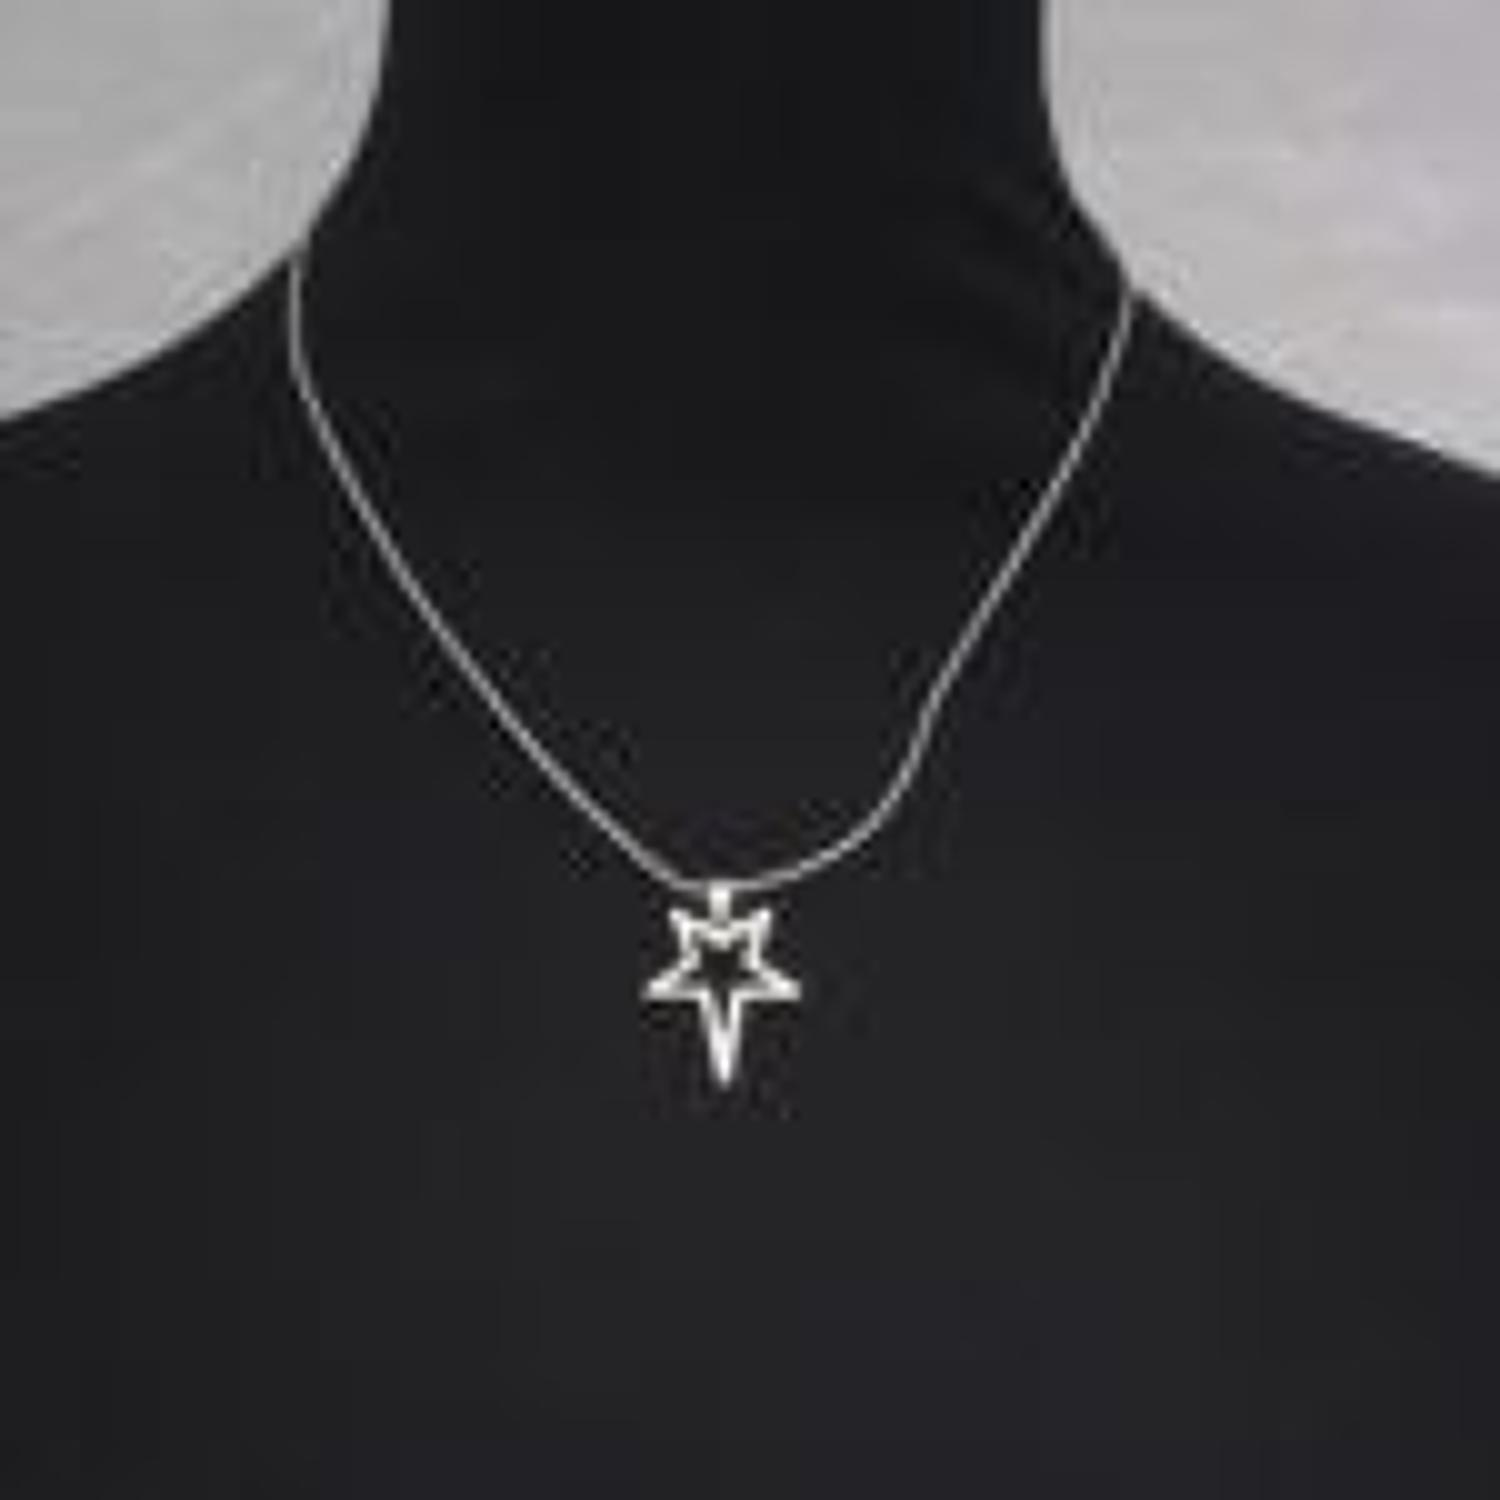 J & L - Rose gold star short necklace